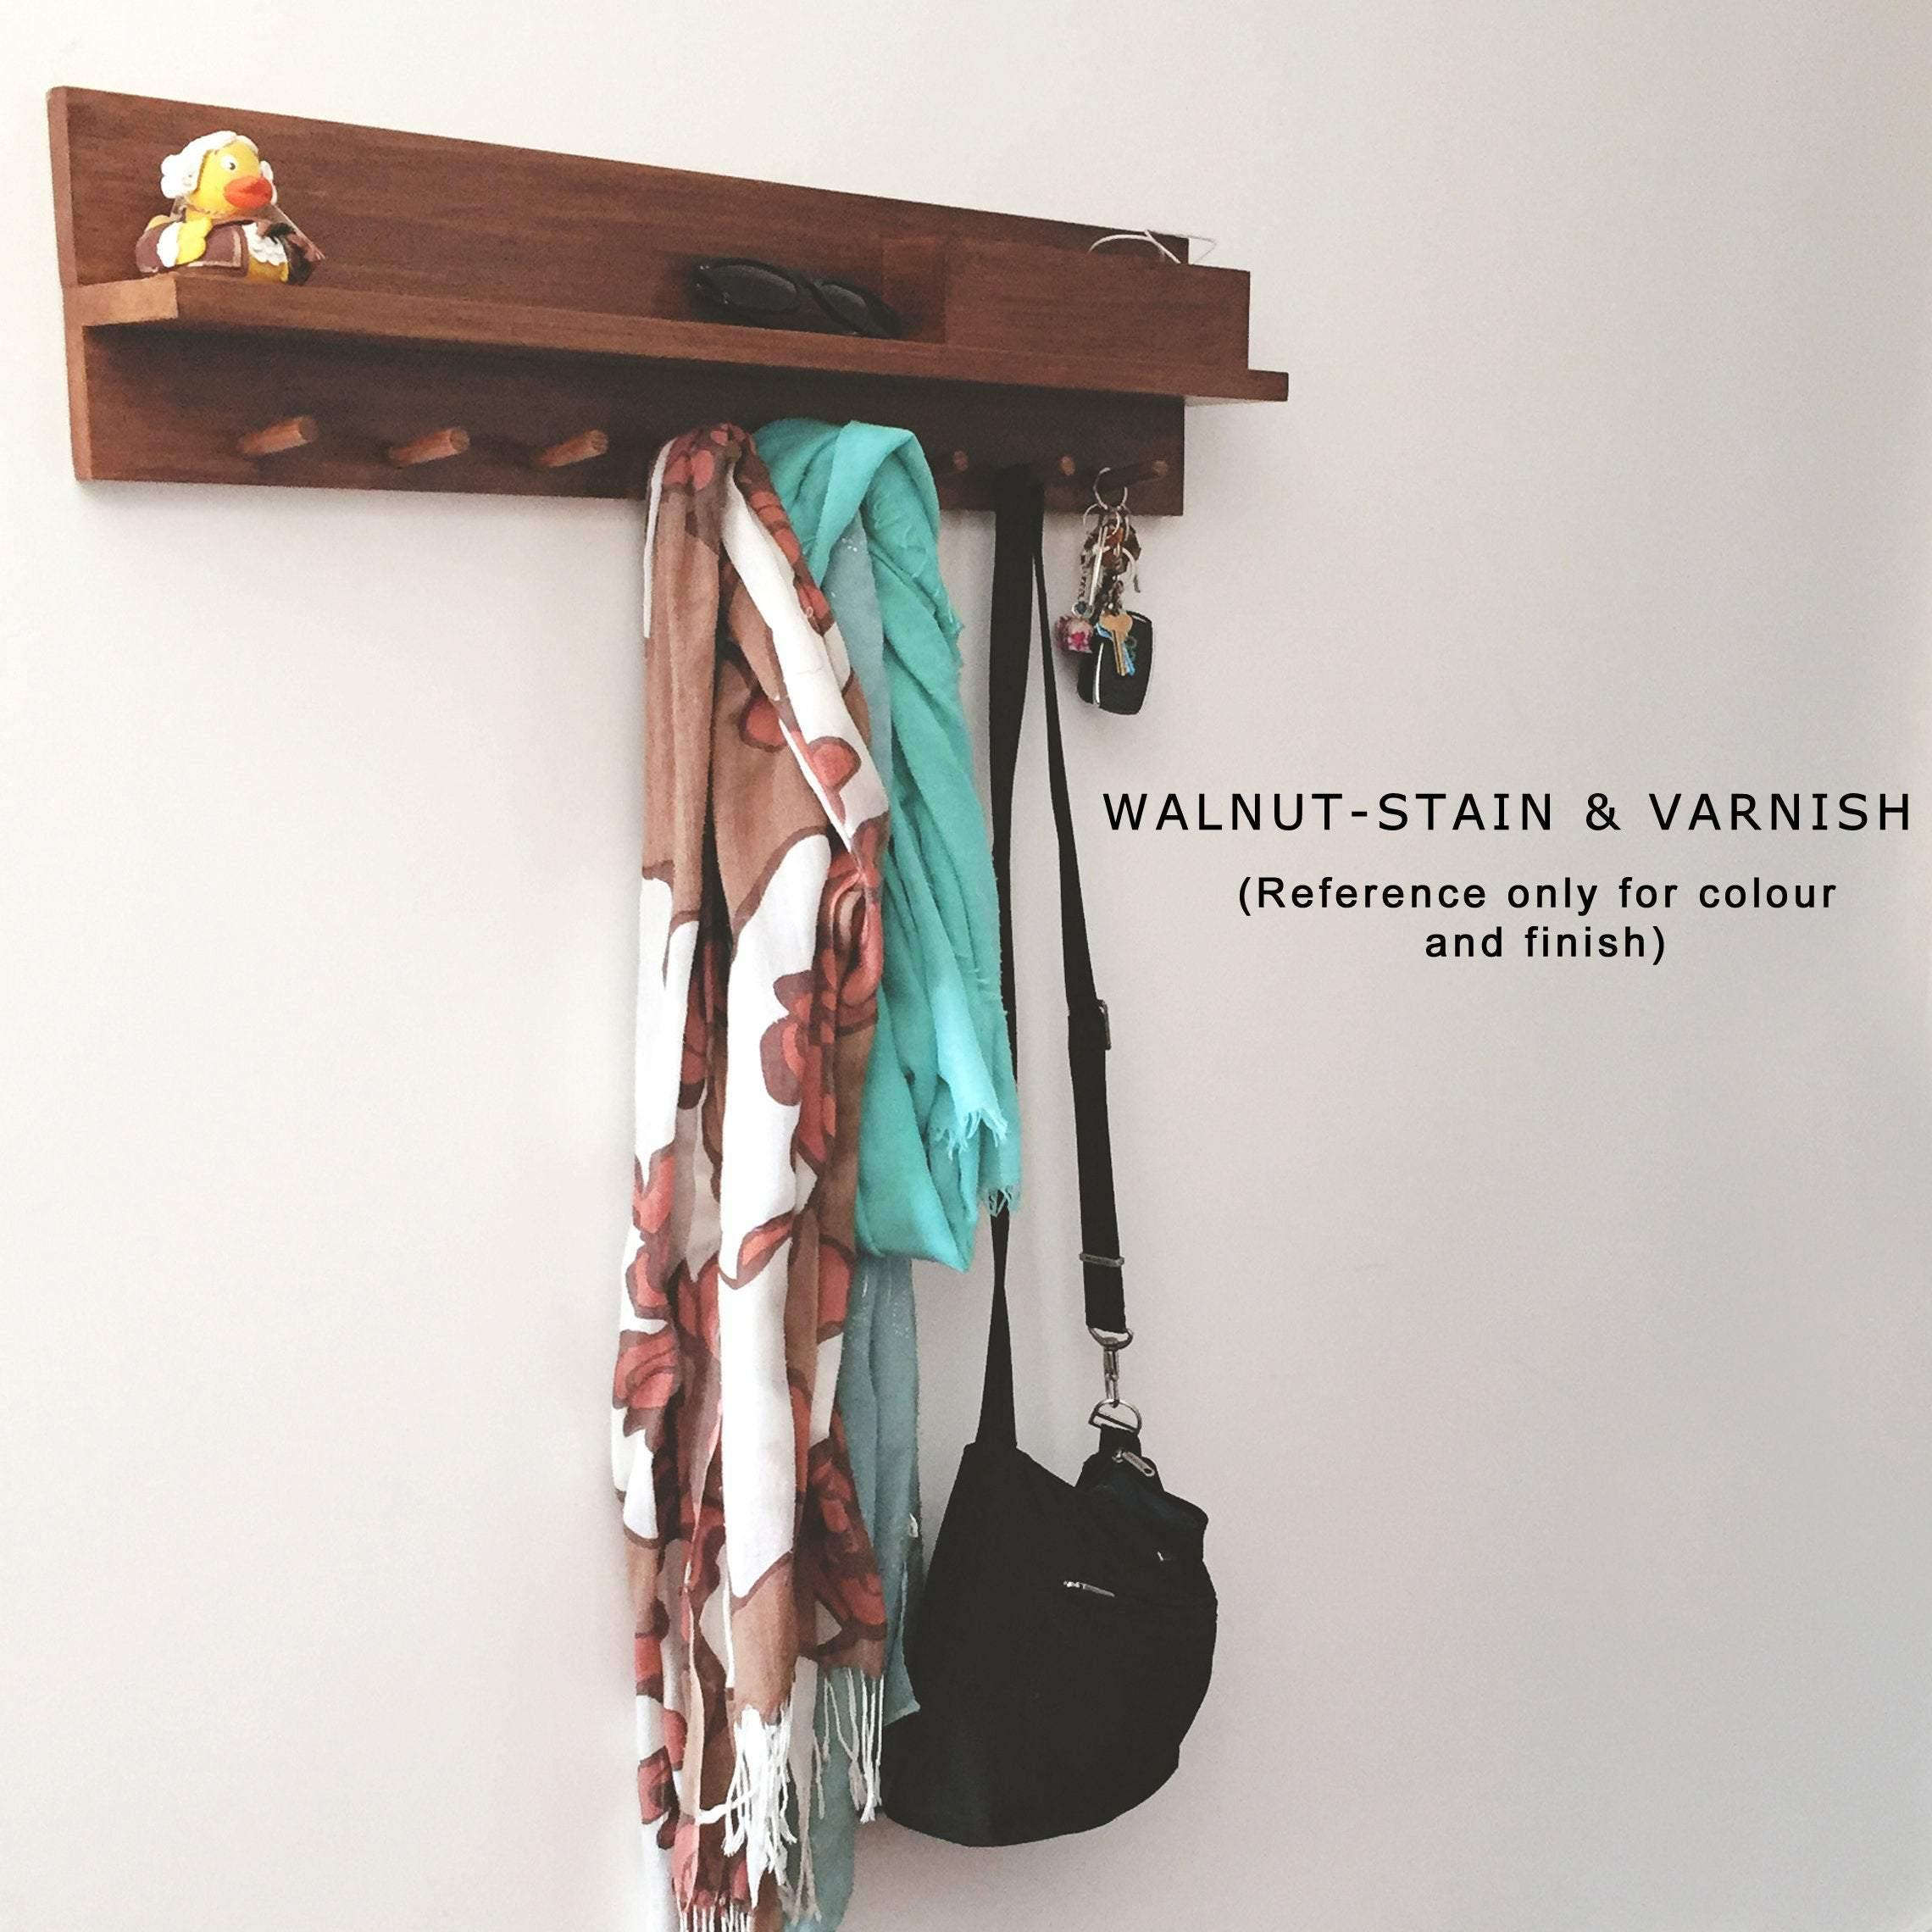 Coat Rack Entryway Organiser Shelf (Oak) 80cm + 6 pegs - Woodyoubuy